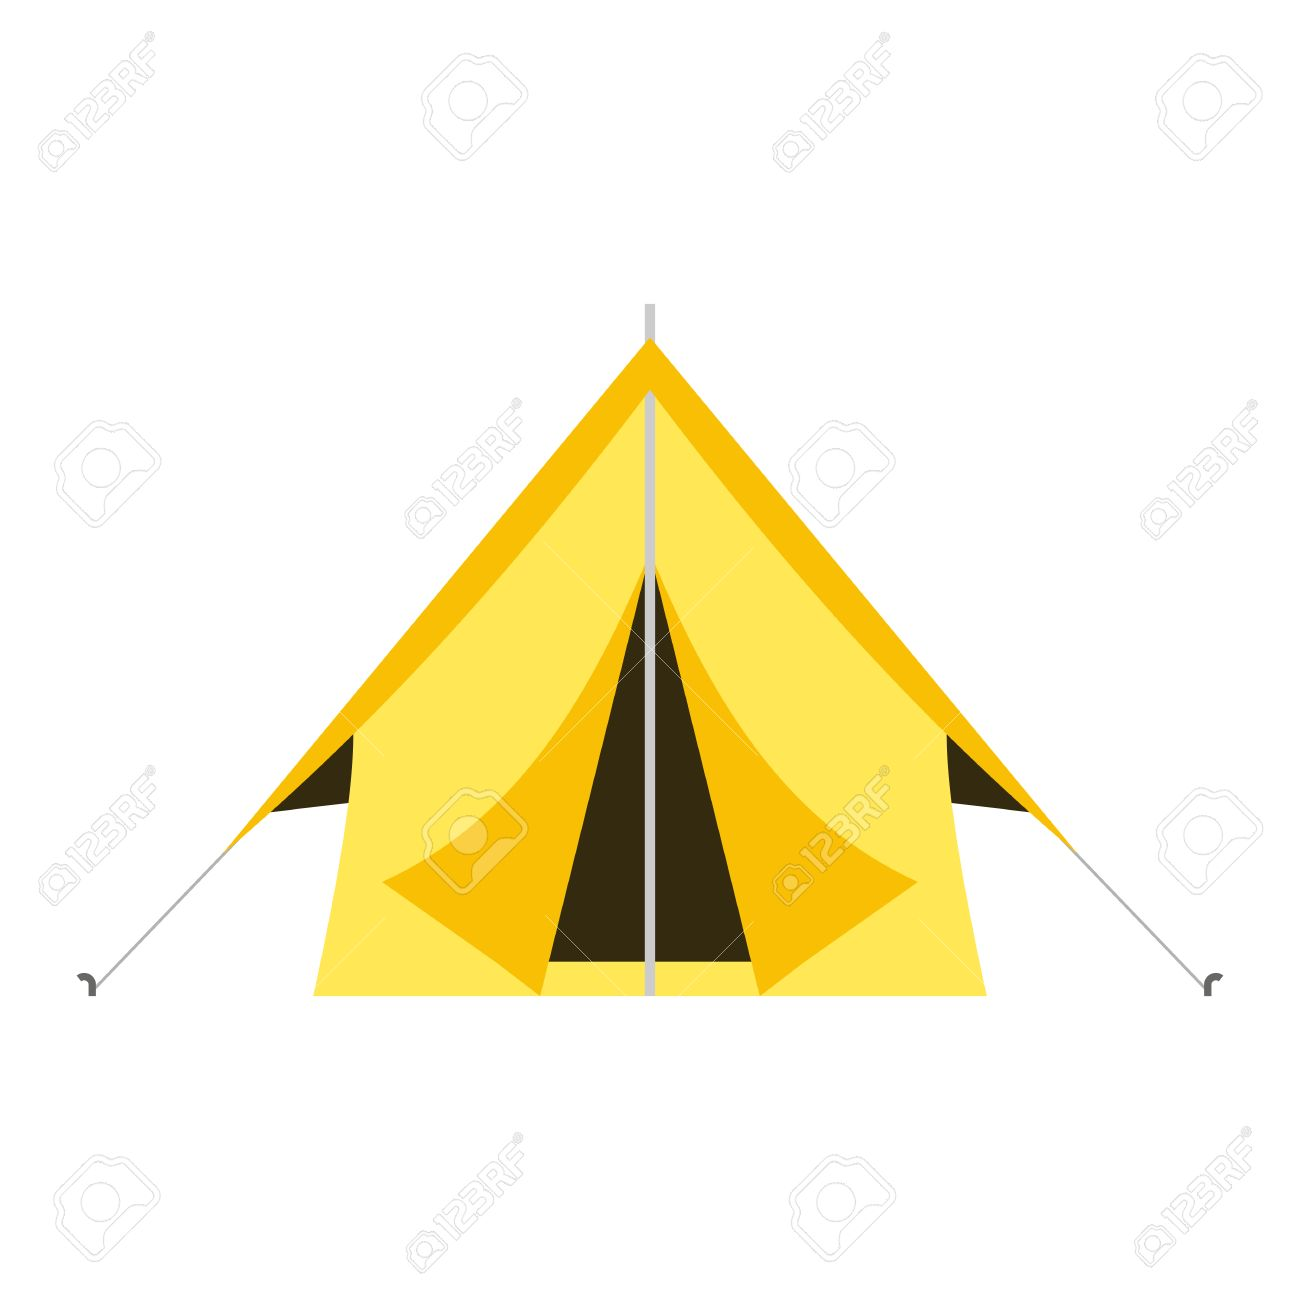 flat design tepee tourist hiking marquee isolated on white background.